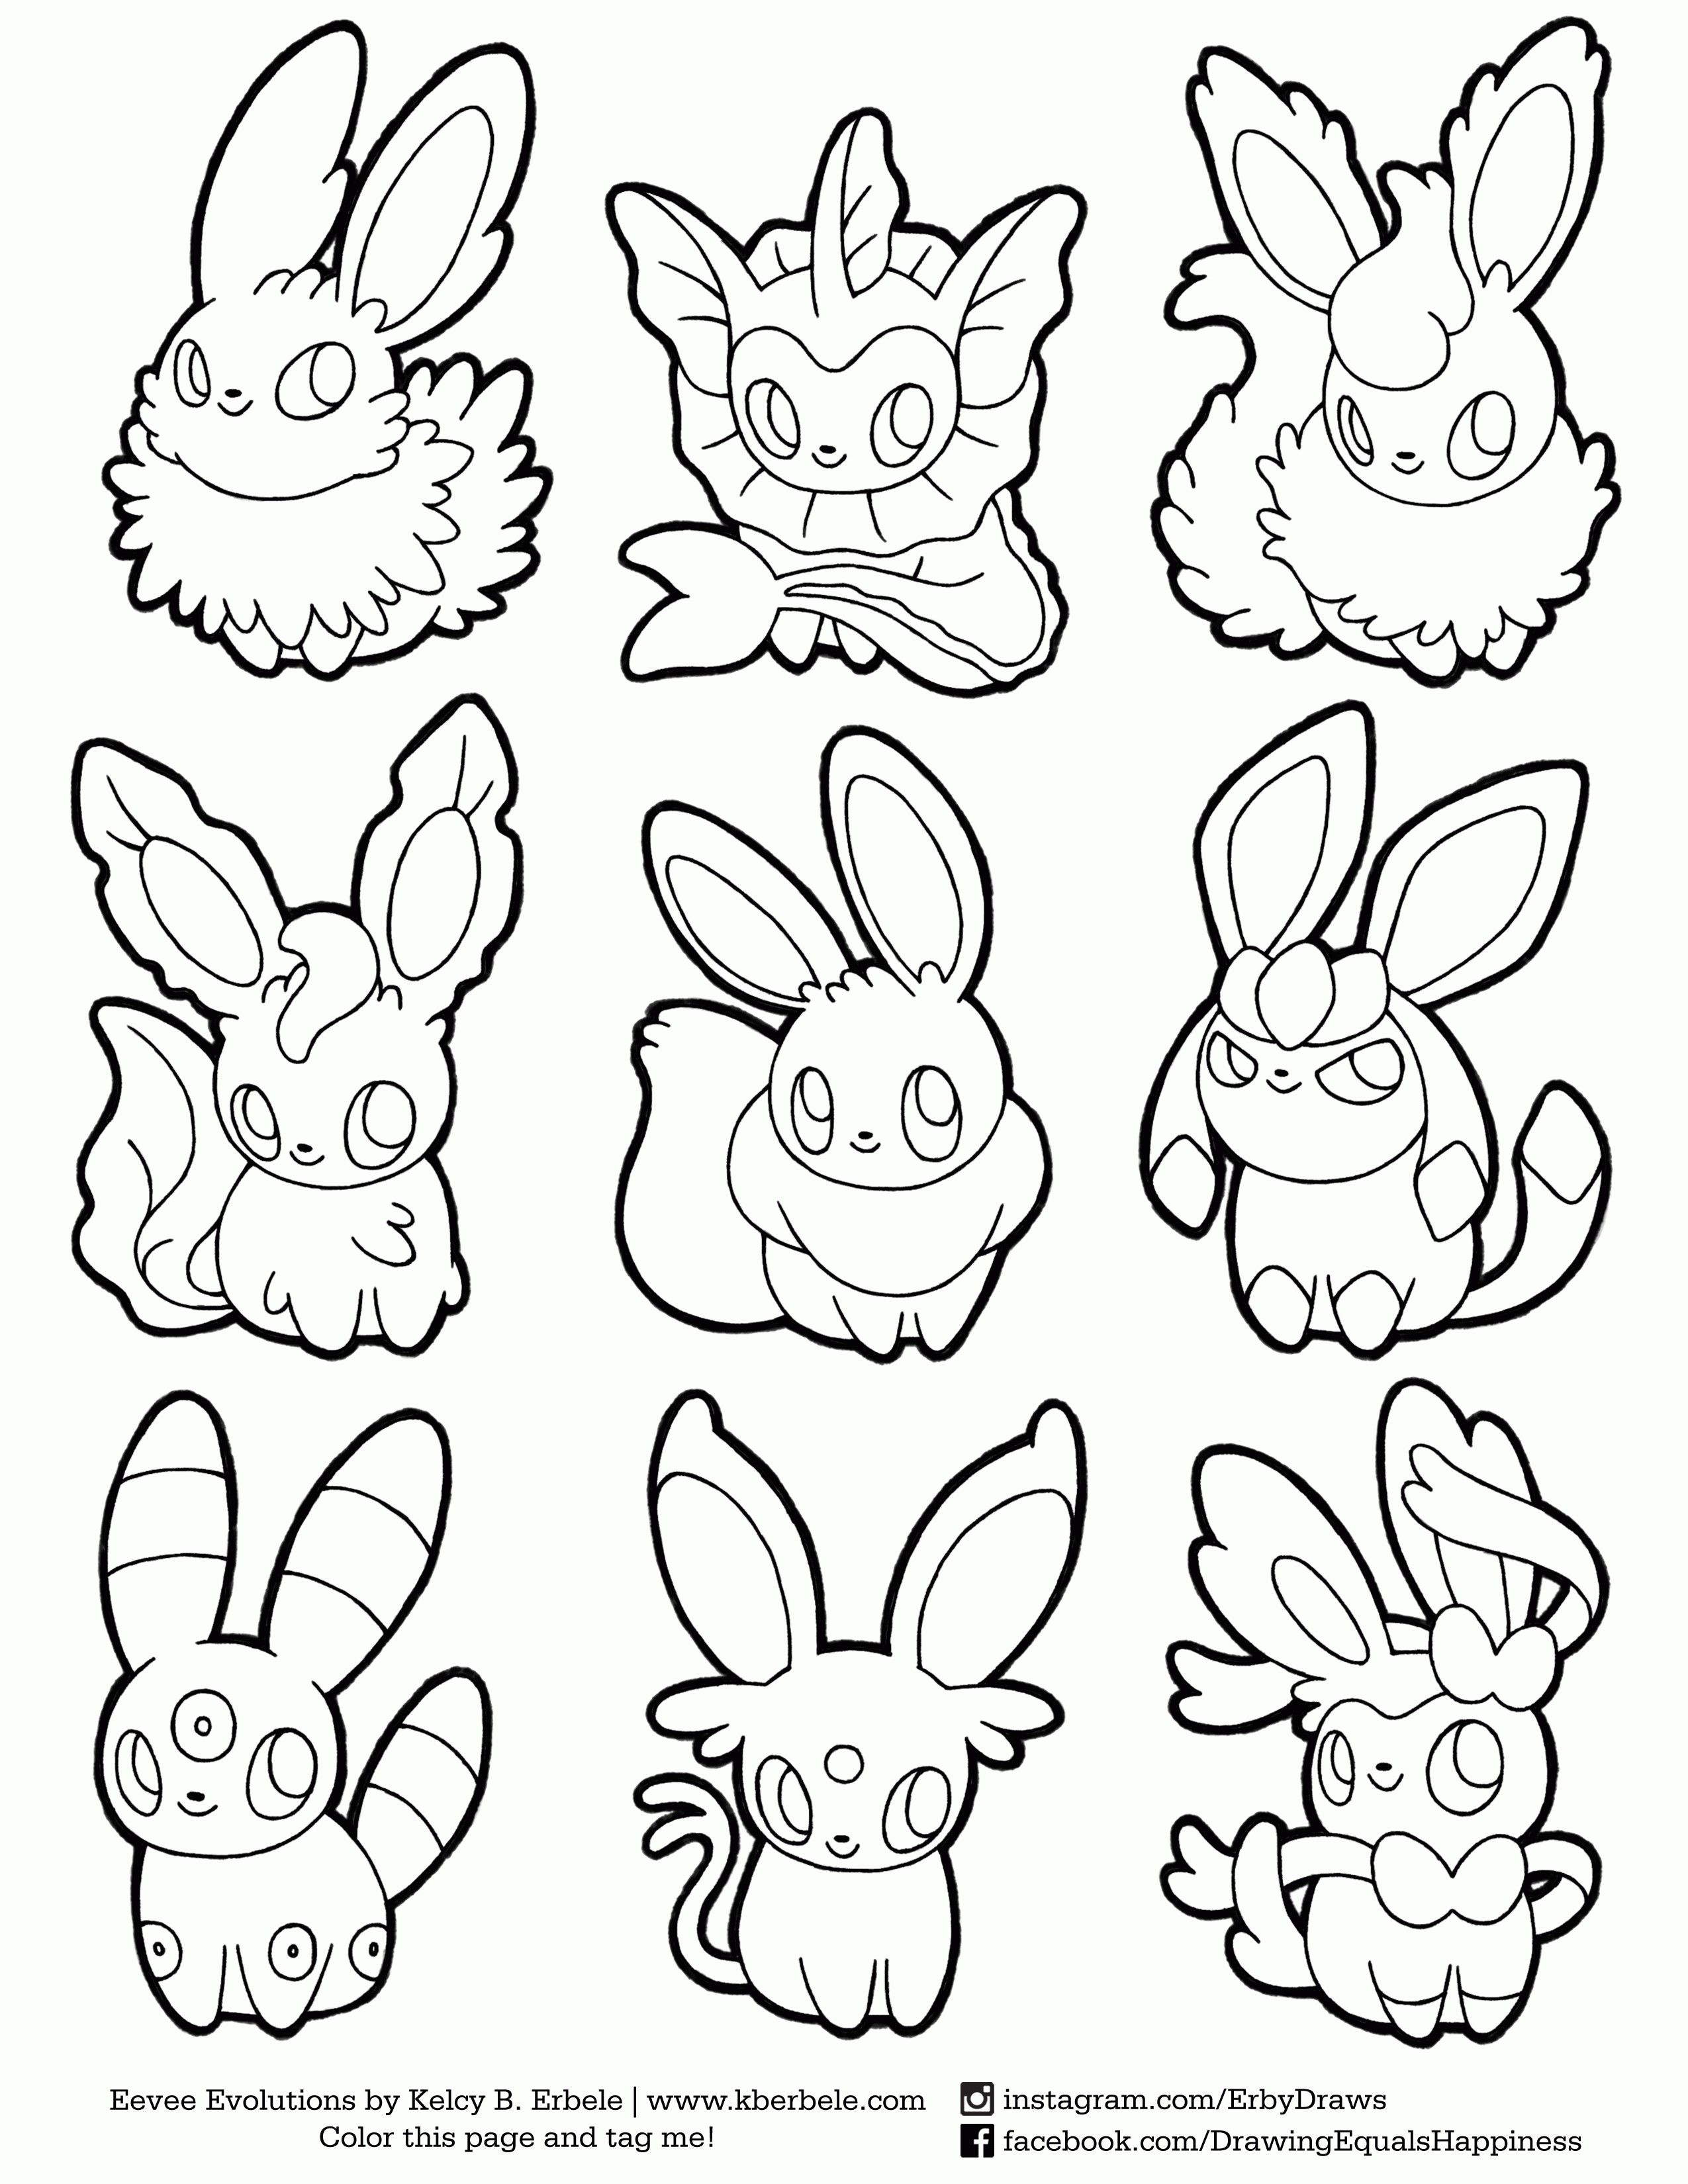 Pokemon Coloring Pages Eevee Evolutions Together From The Thousand Photos Online Concerning P Pokemon Coloring Pages Pokemon Coloring Sheets Pokemon Coloring